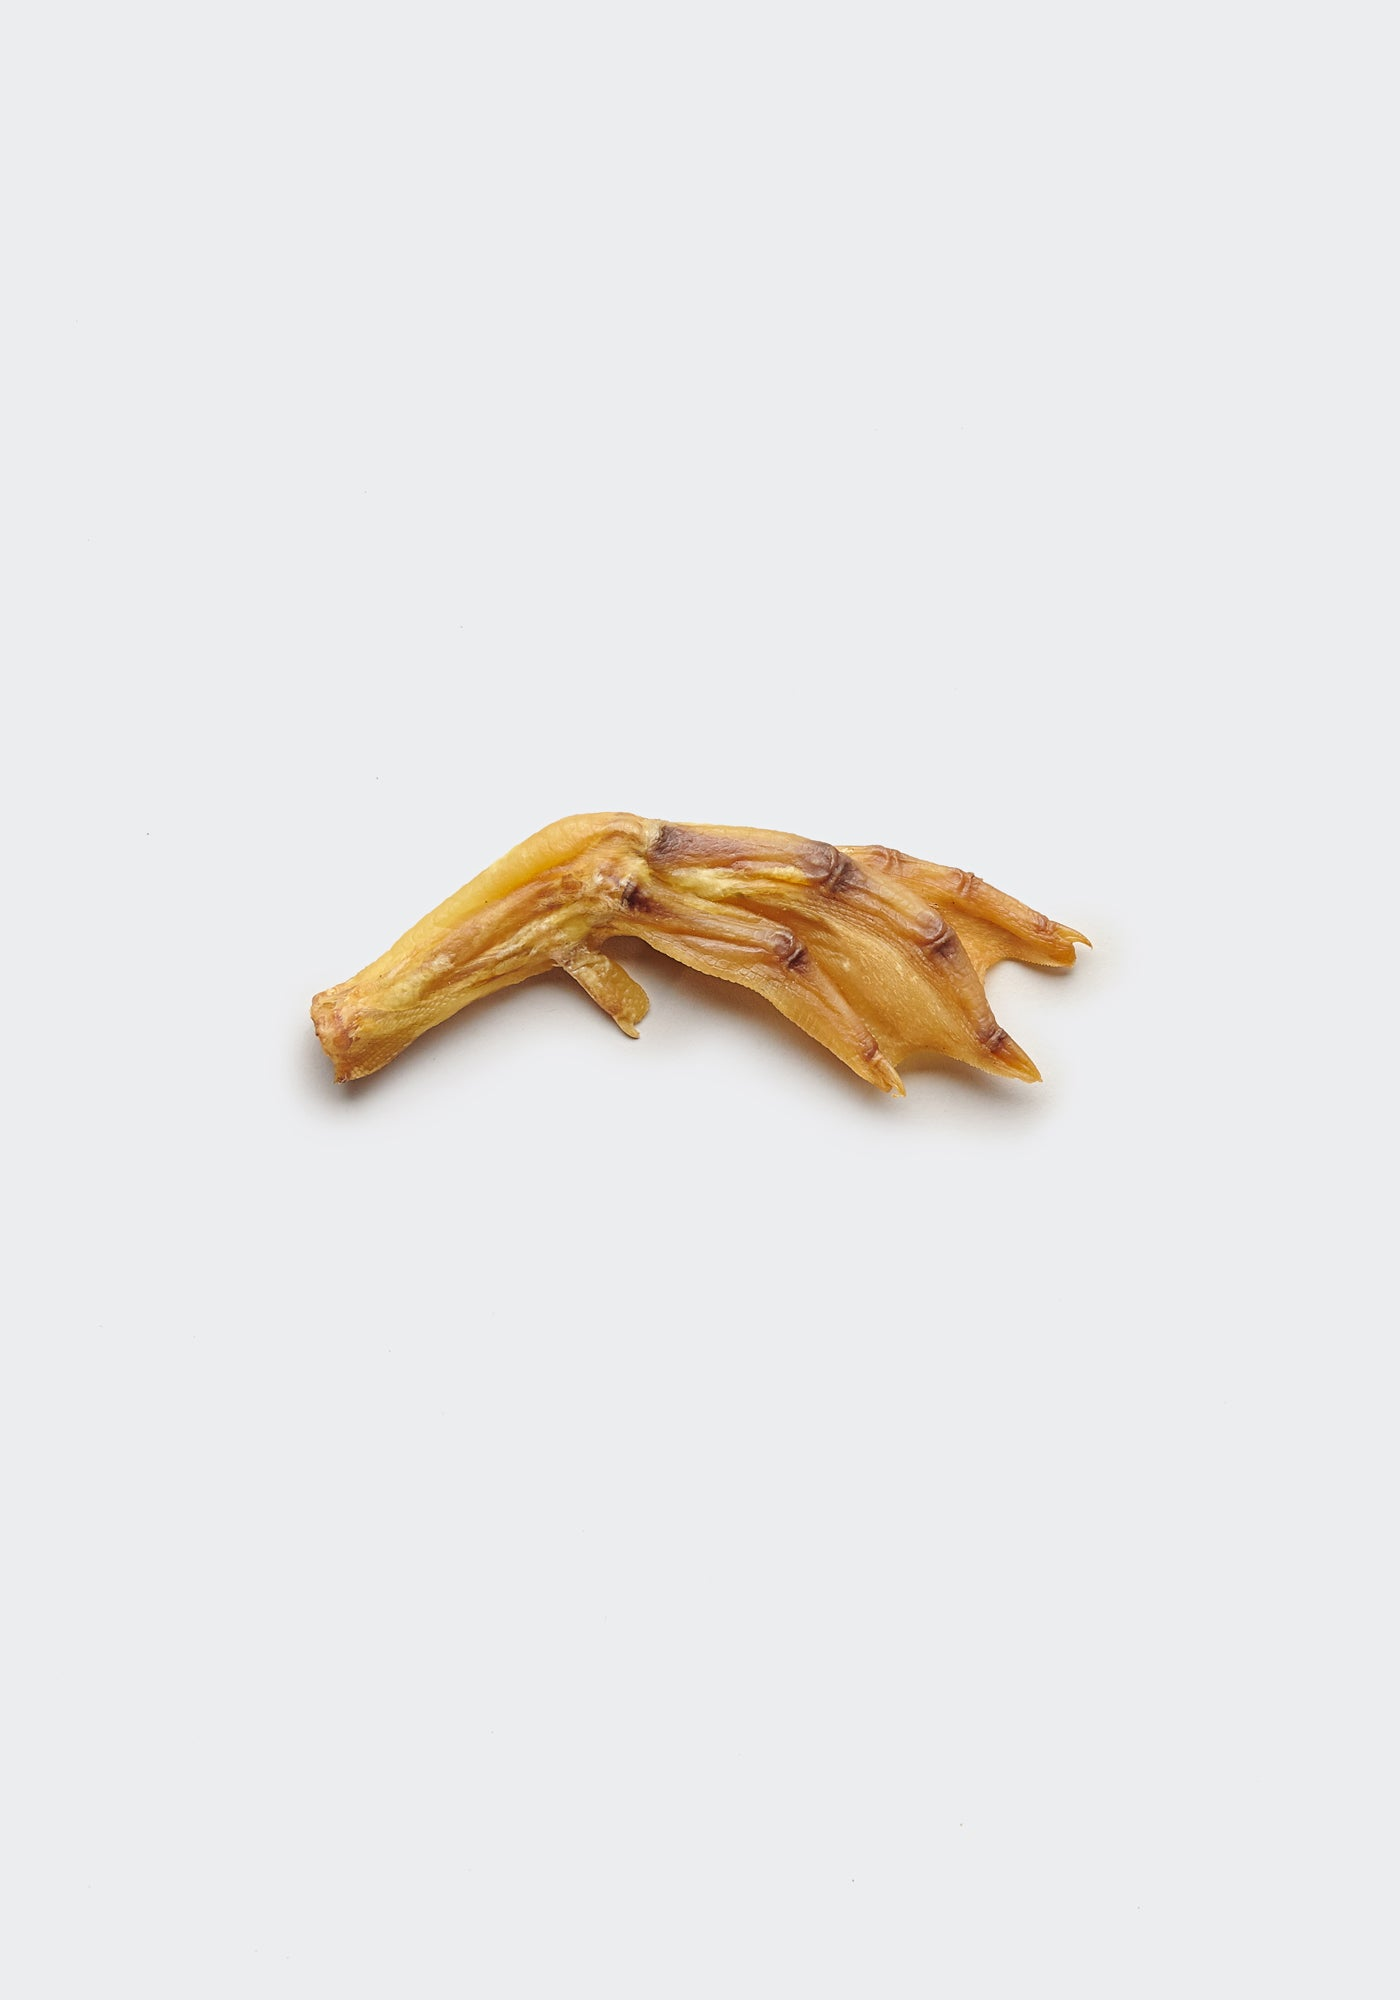 Duck foot (single)